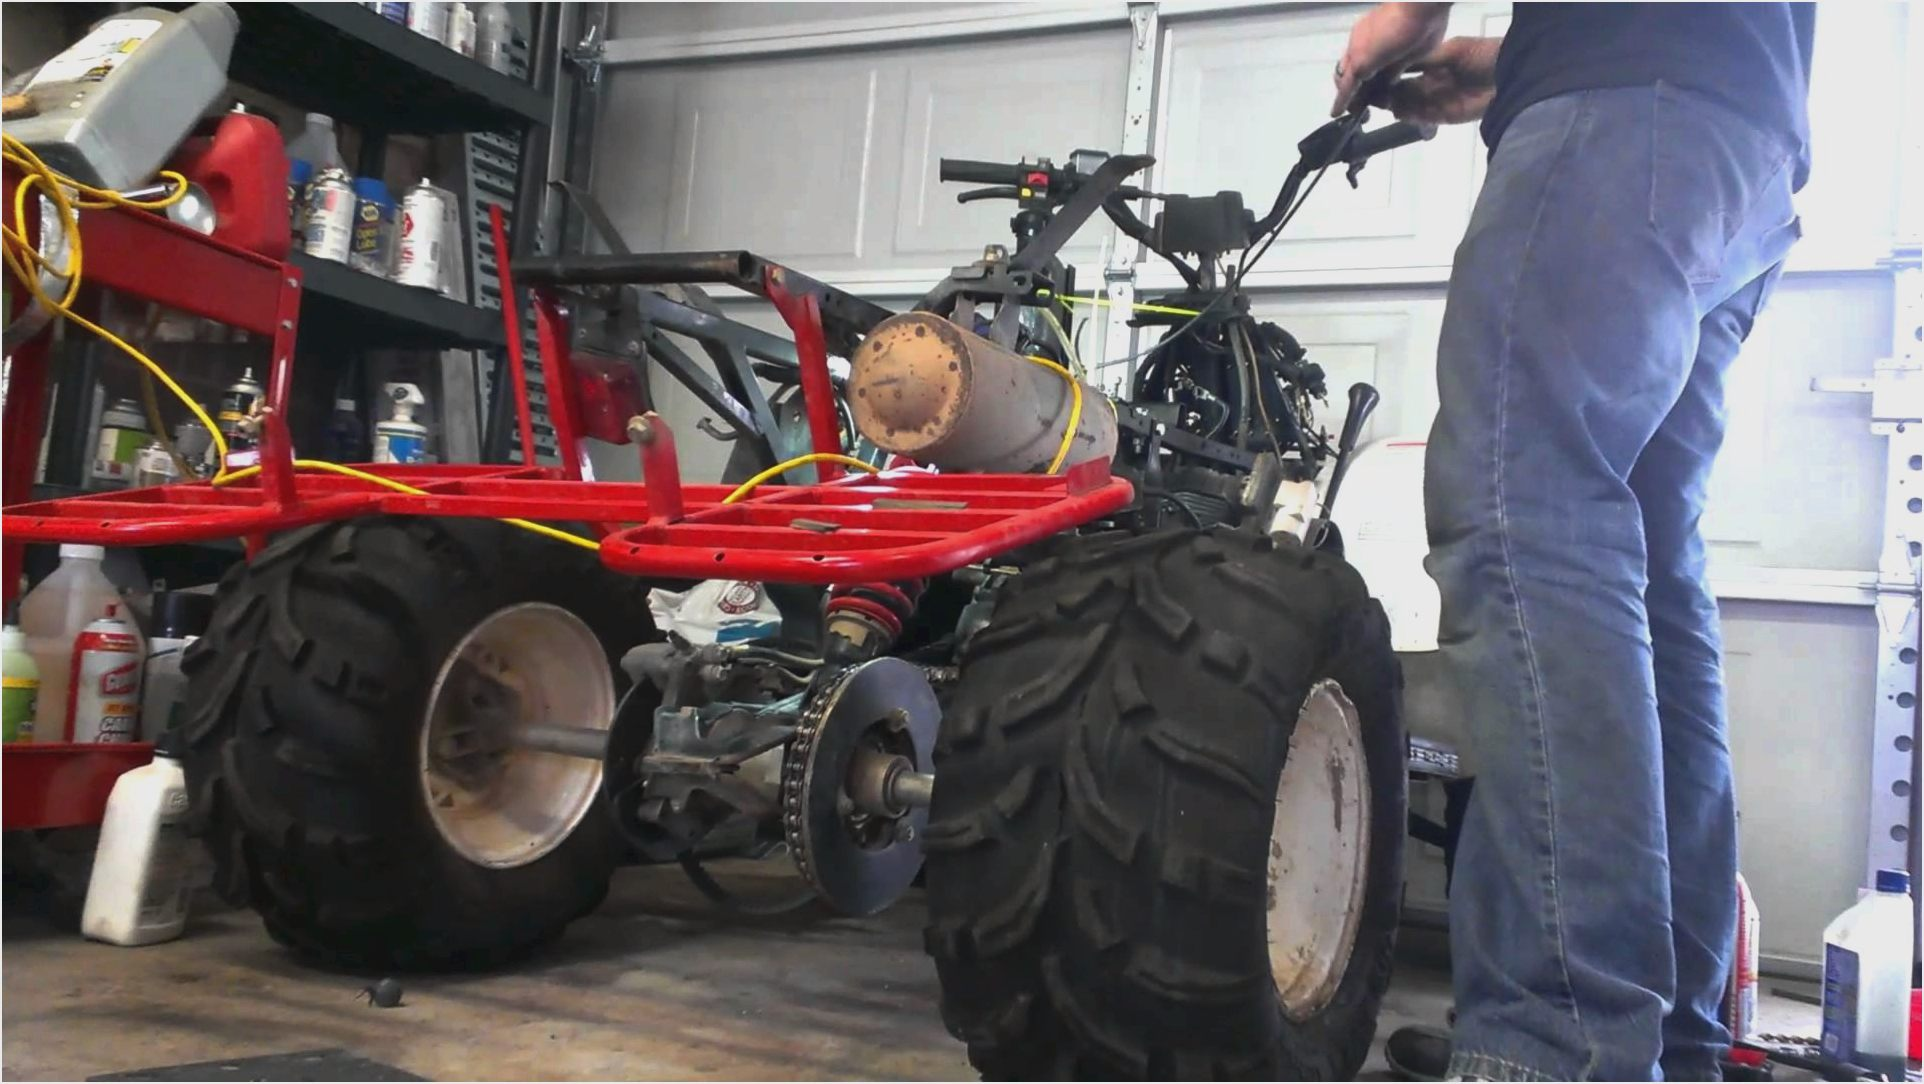 1999 2000 polaris atv and 6x6 repair manual download Array - 2001 polaris  scrambler 500 manual viewmotorjdi org rh viewmotorjdi org 1998 polaris 325  magnum ...